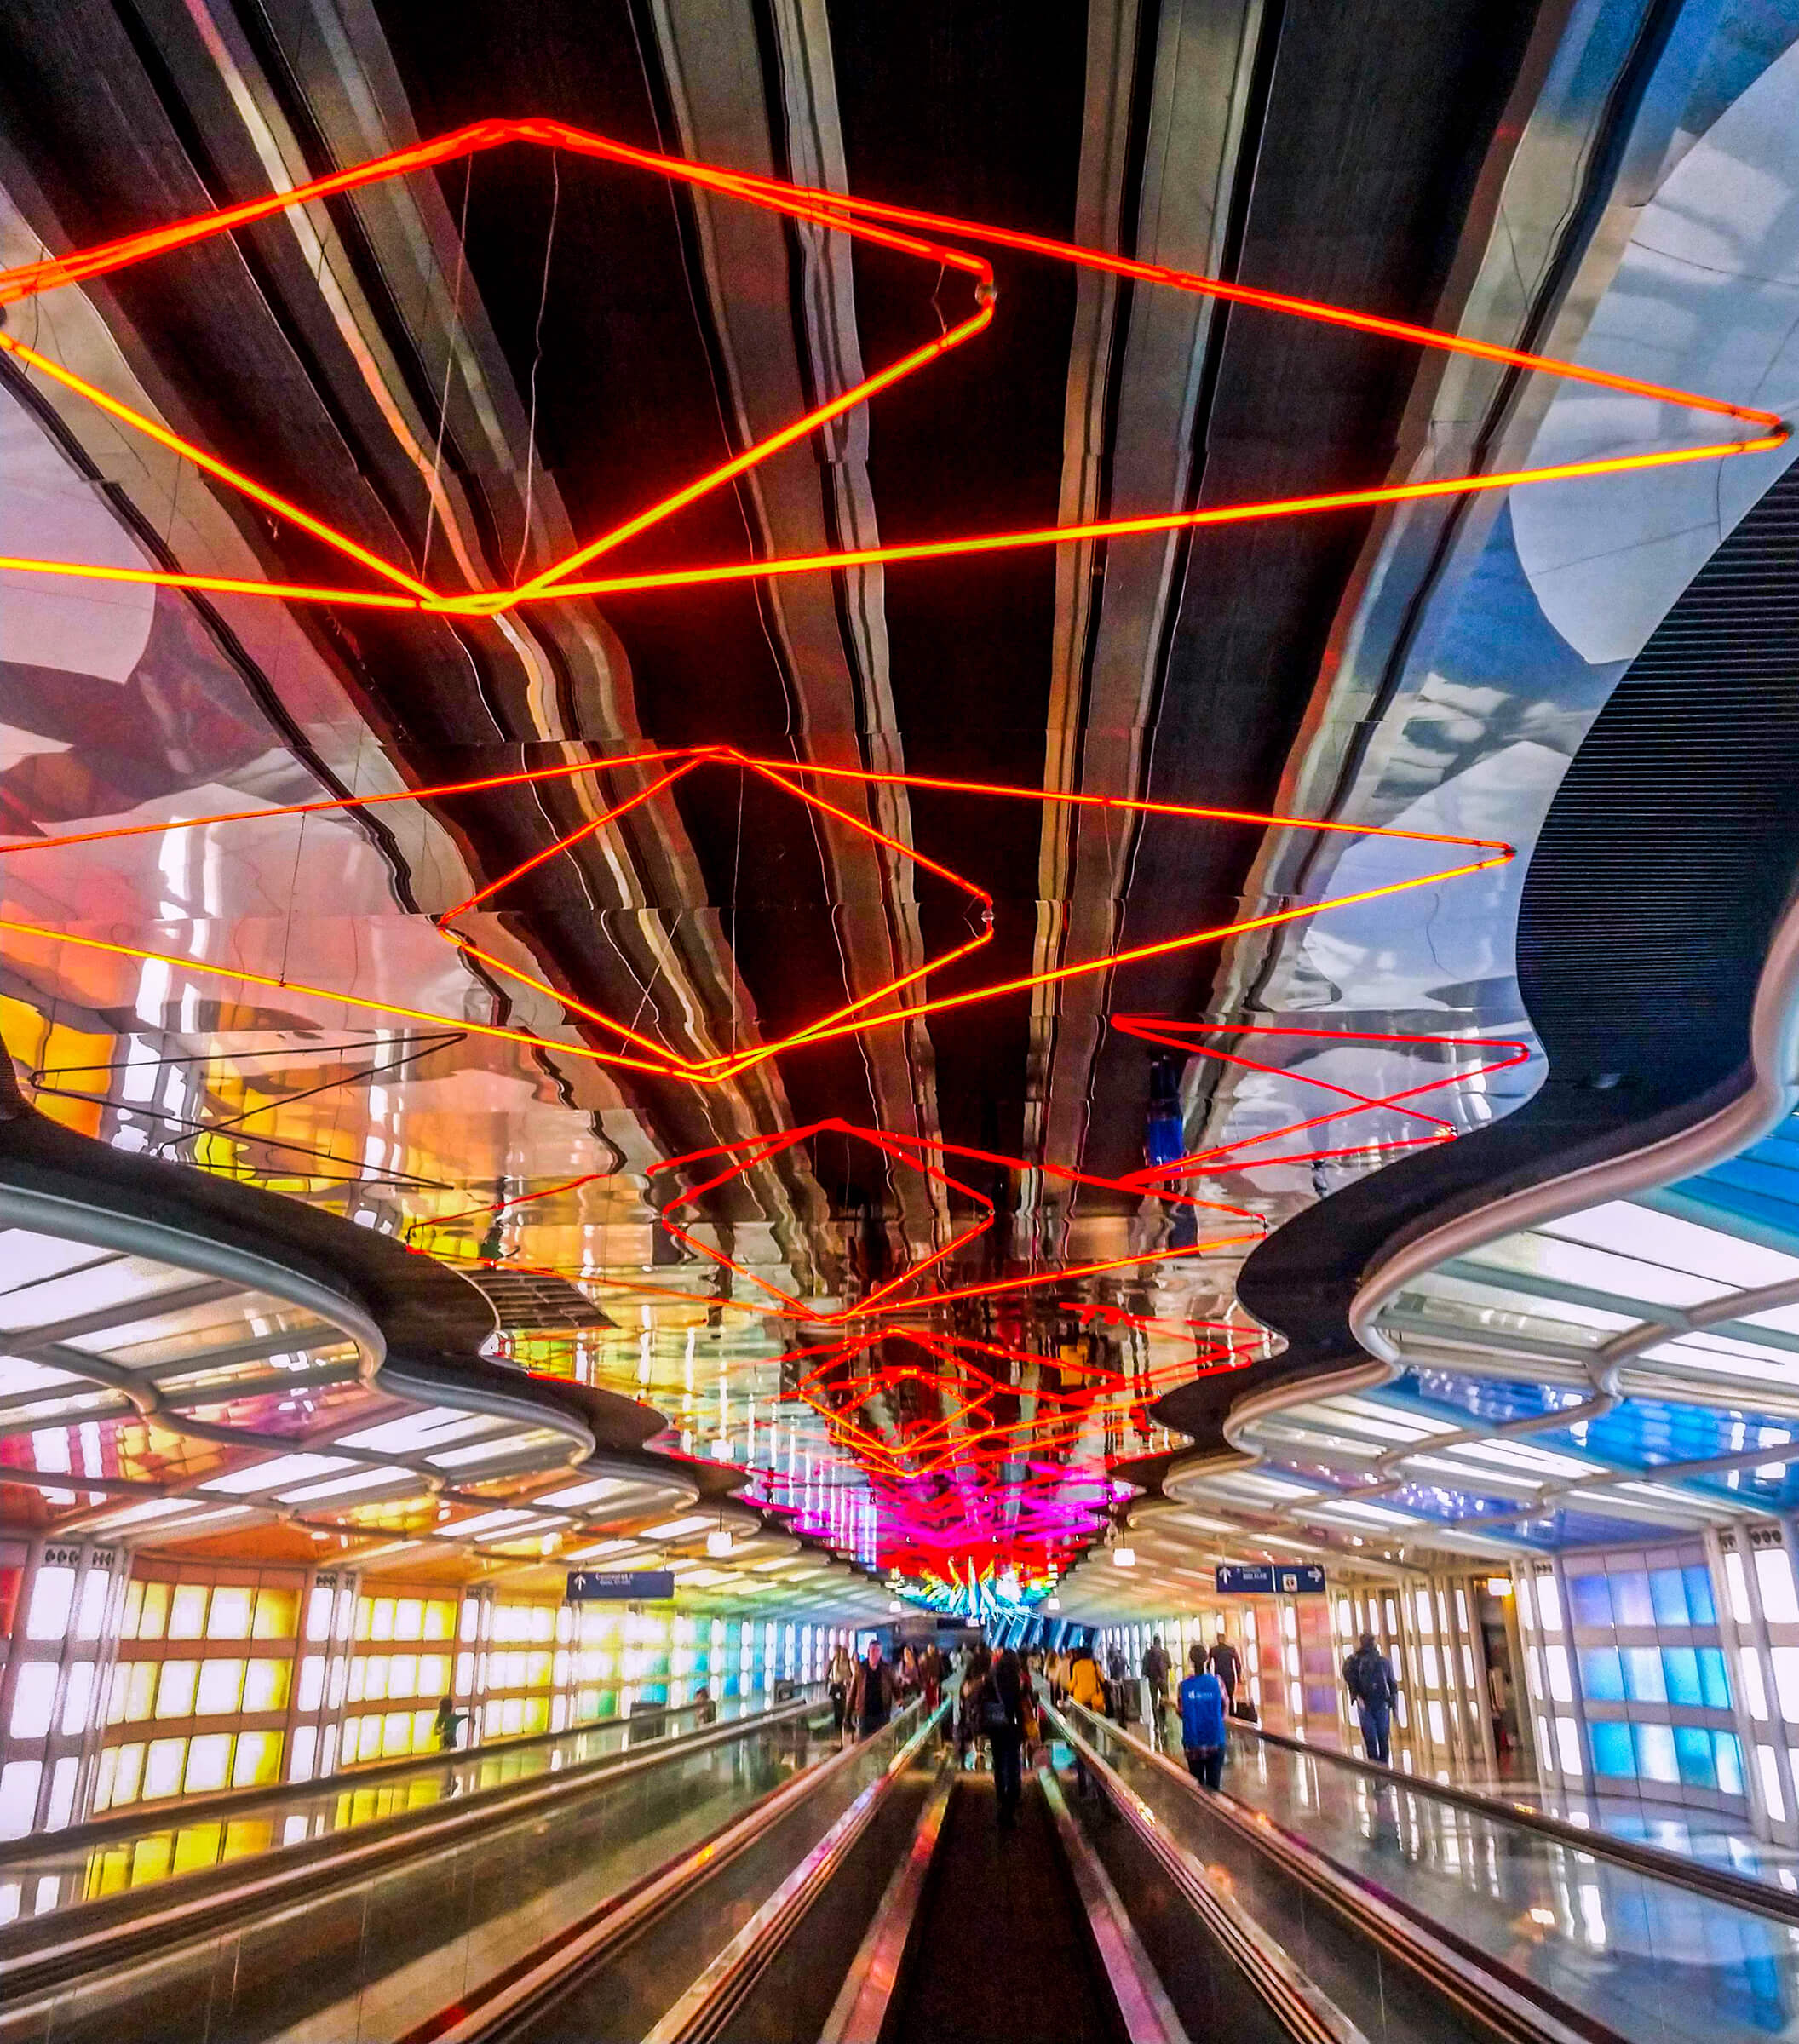 Architectural Photography Chicago O'Hare Airport, people walk on a escalator in a colorful terminal